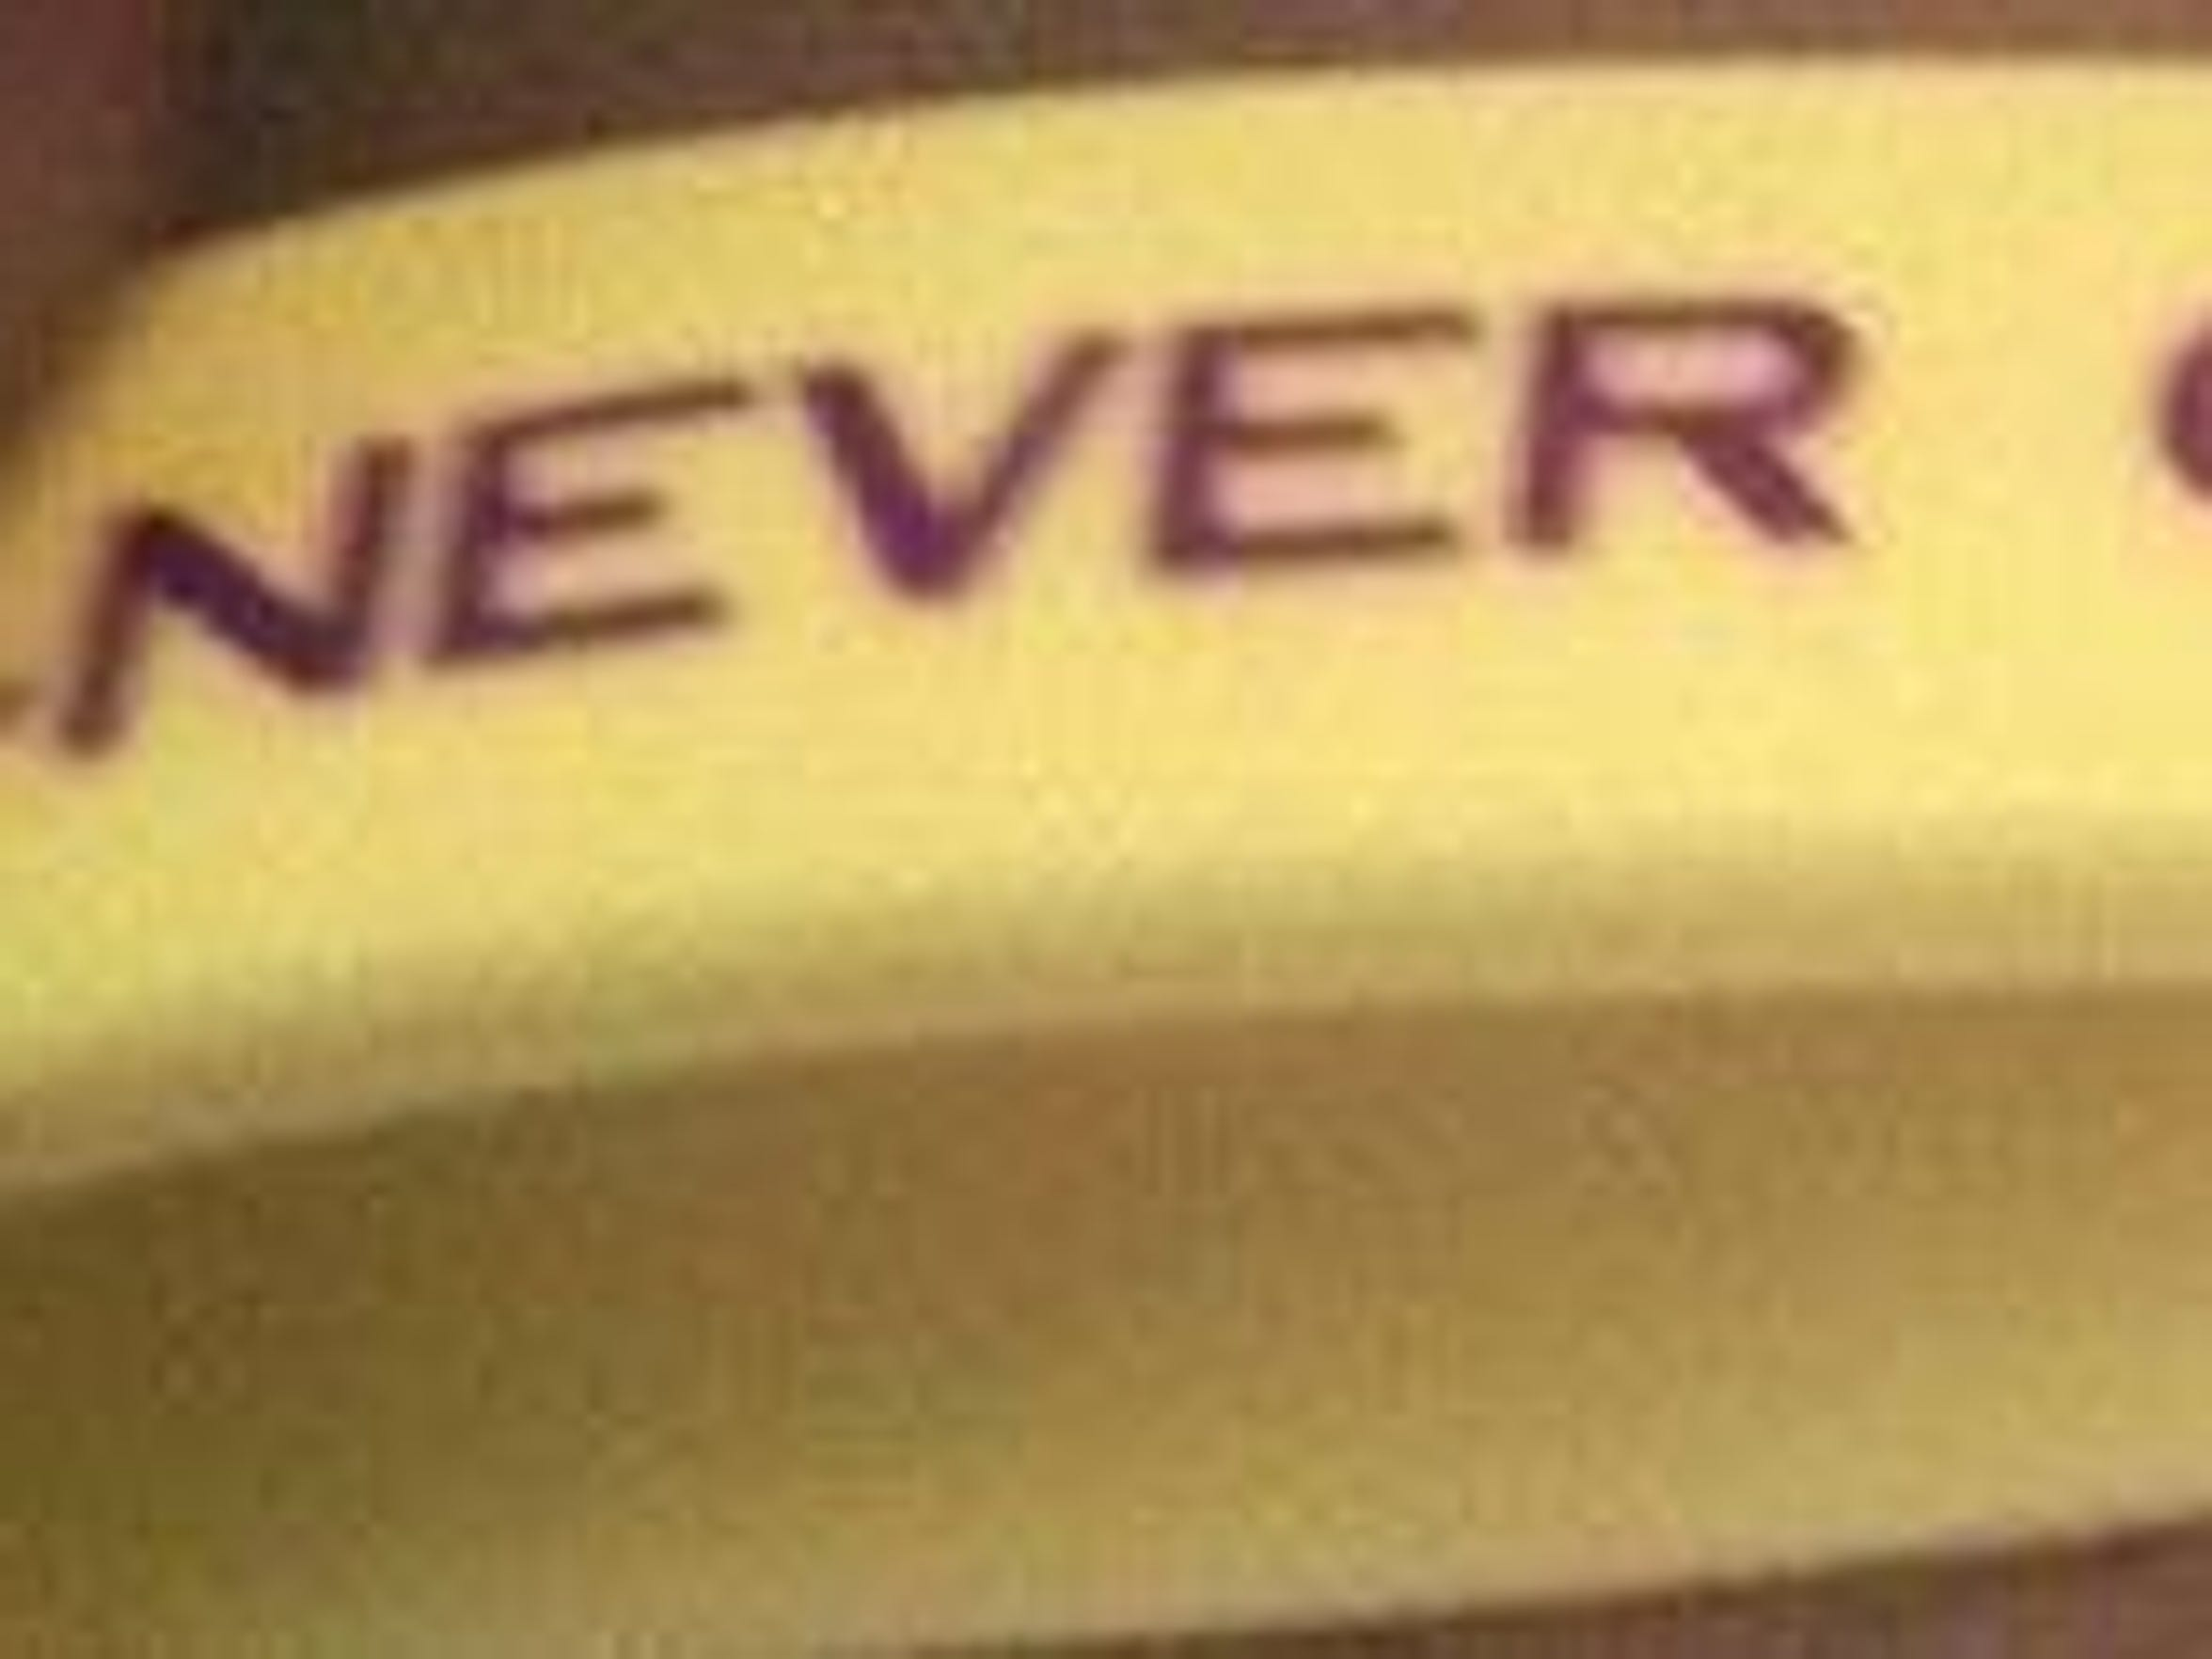 The bracelet the family is selling to raise money for